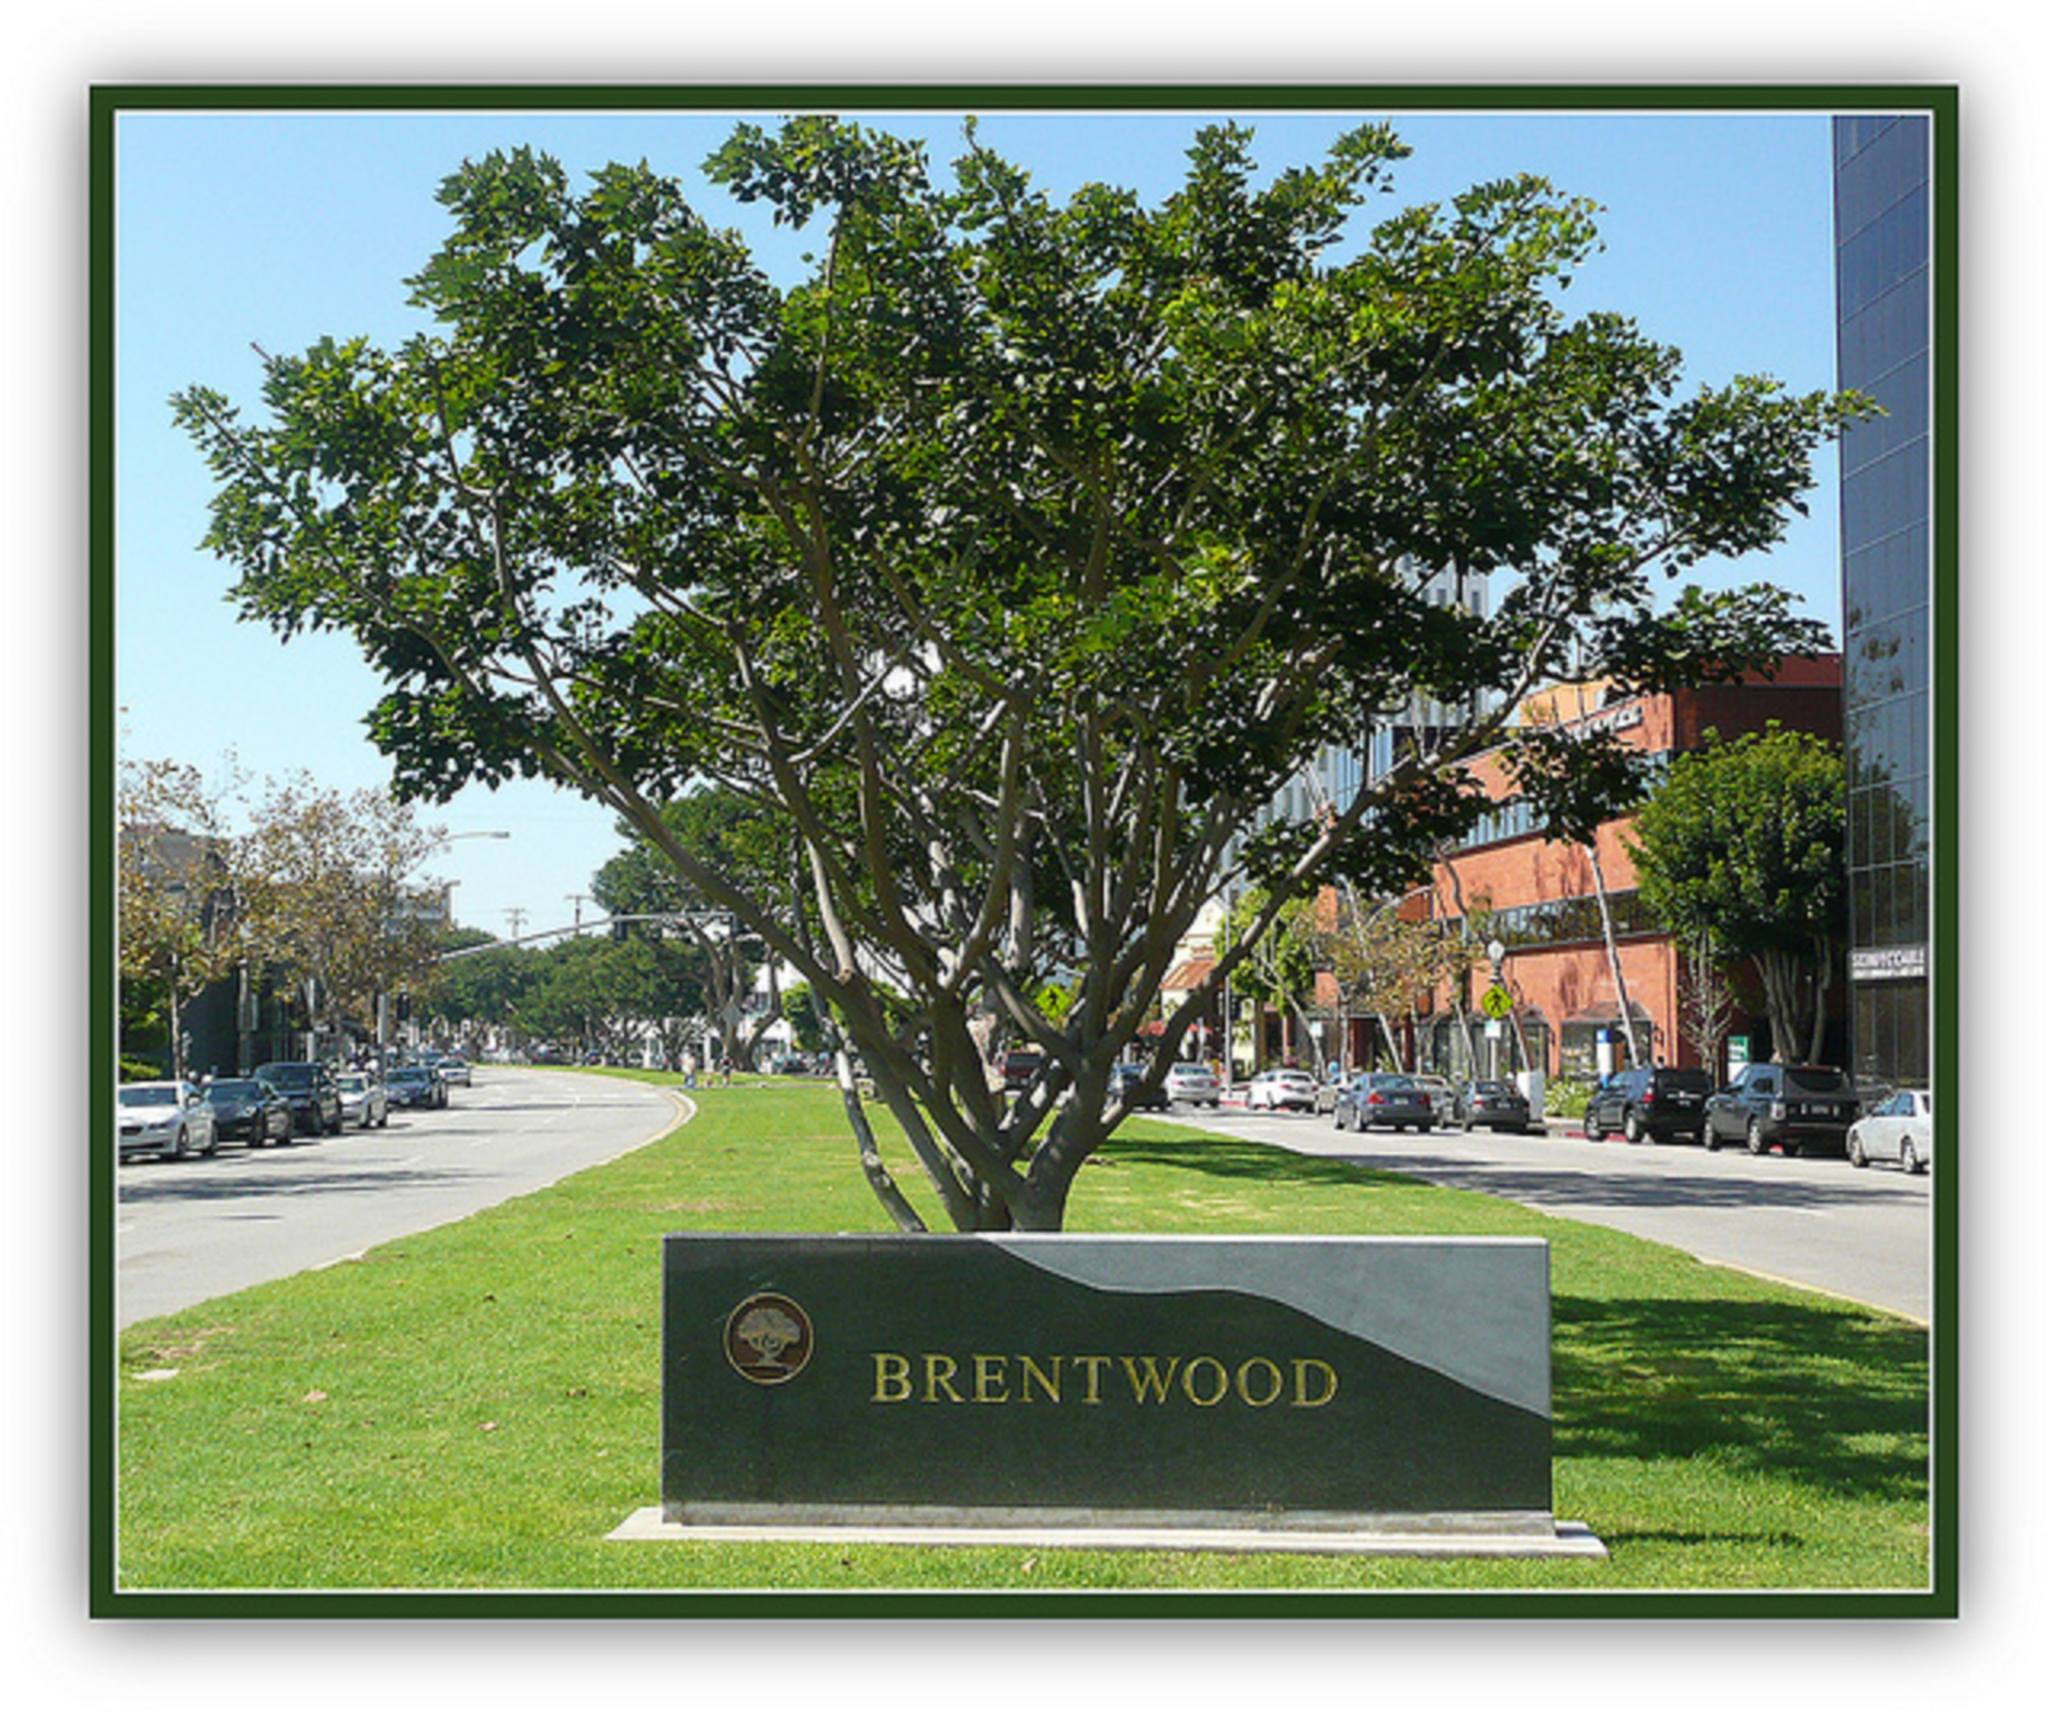 Brentwood Real Estate Market Update- Why the time to sell is now